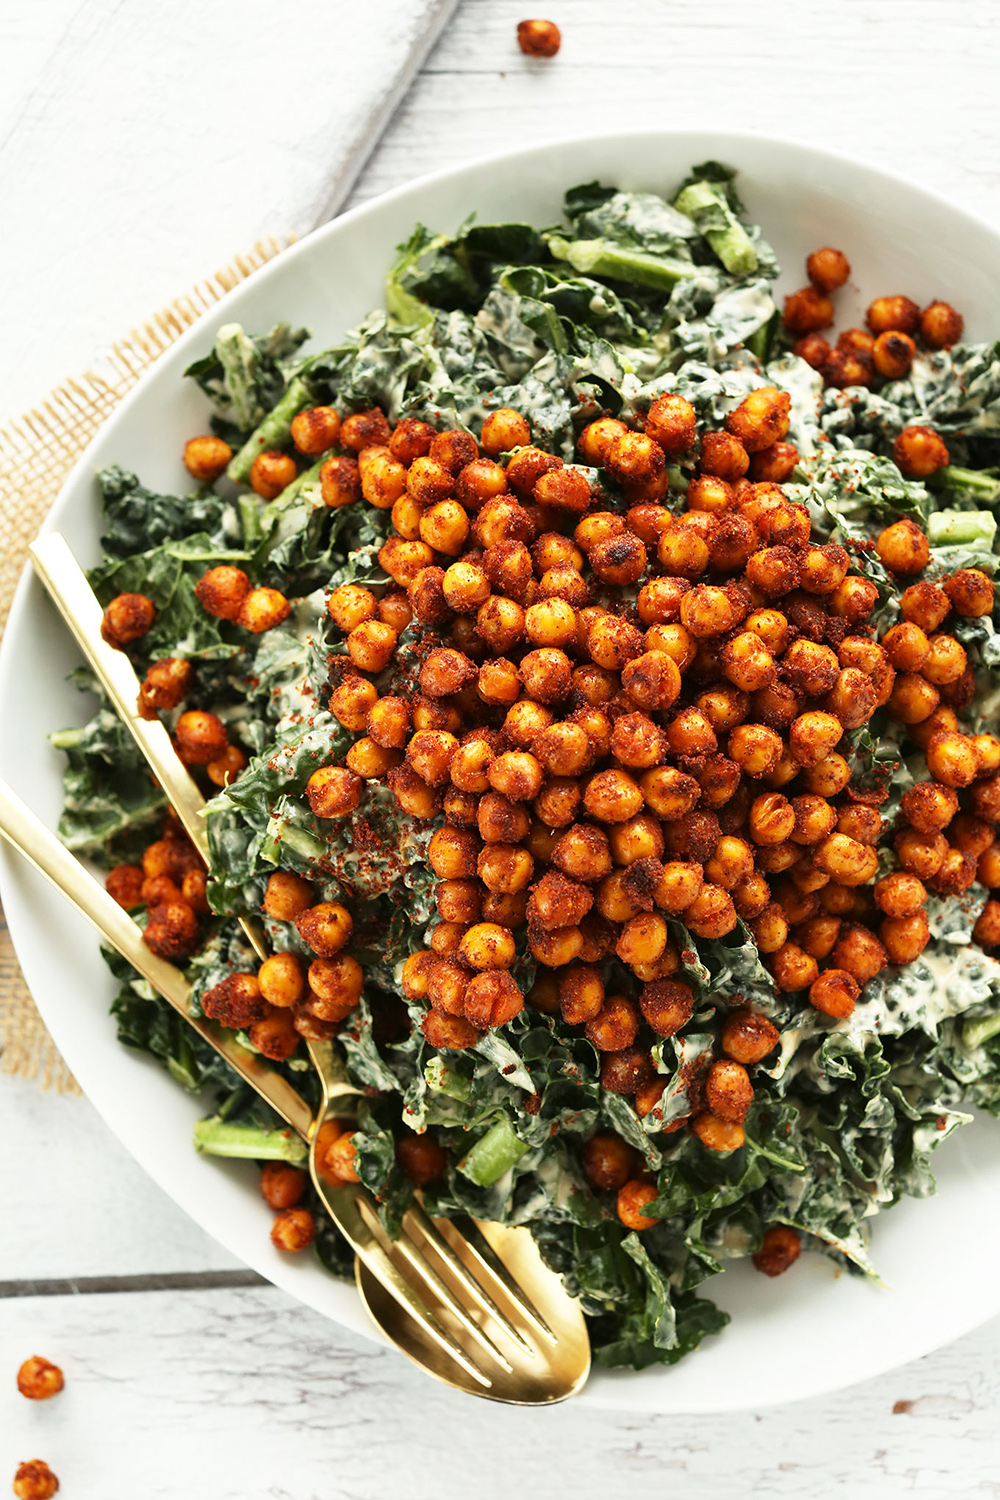 Garlicky Kale Salad with Crispy Chickpeas | Minimalist Baker - Pinterest Picks - 10 Mouthwatering Winter Salads